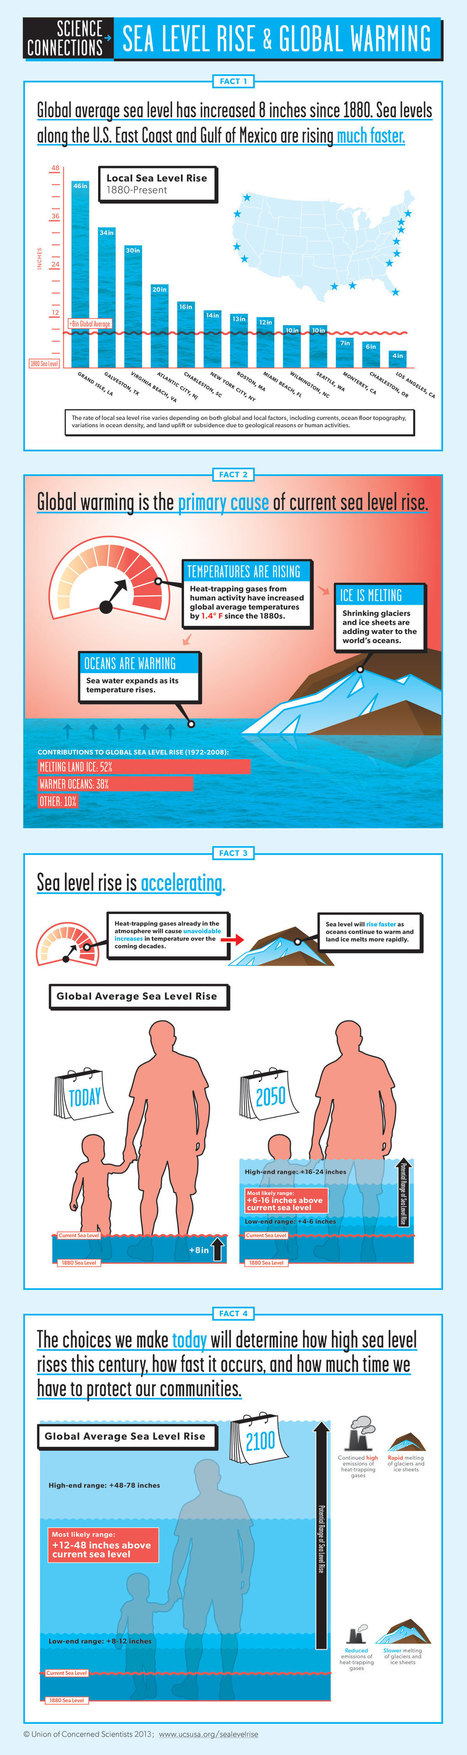 Infographic: Sea Level Rise and Global Warming | UCSUSA | CrowdSourcing InfoGraphics | Scoop.it